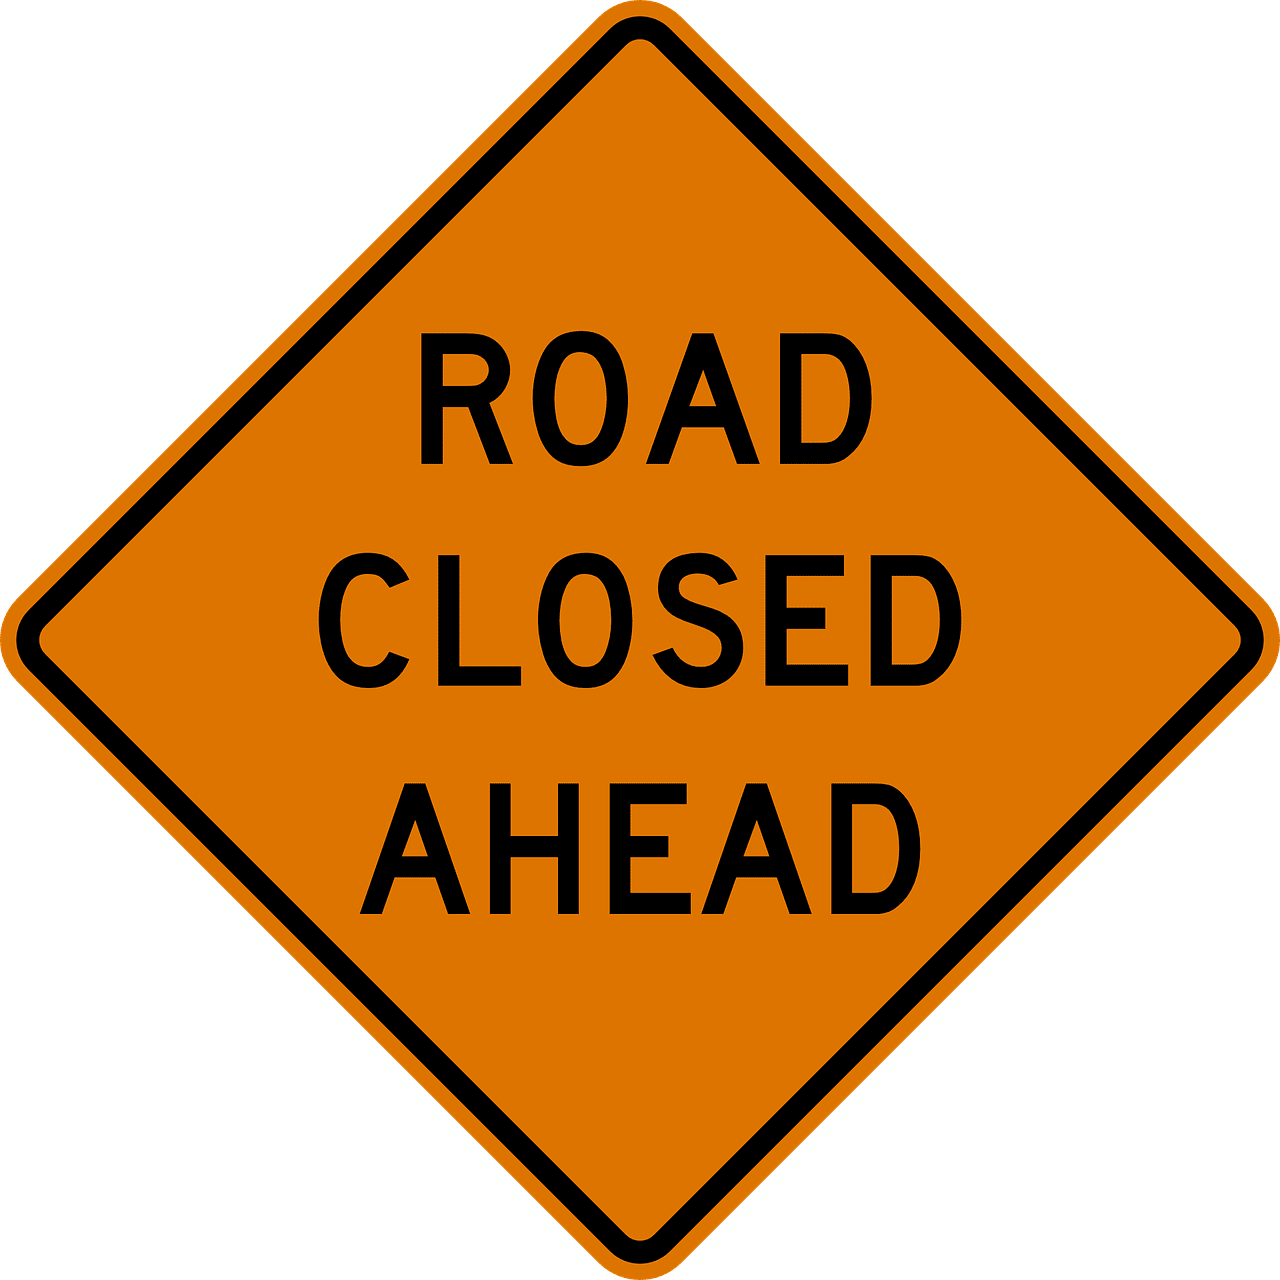 road-closed-traffic-sign